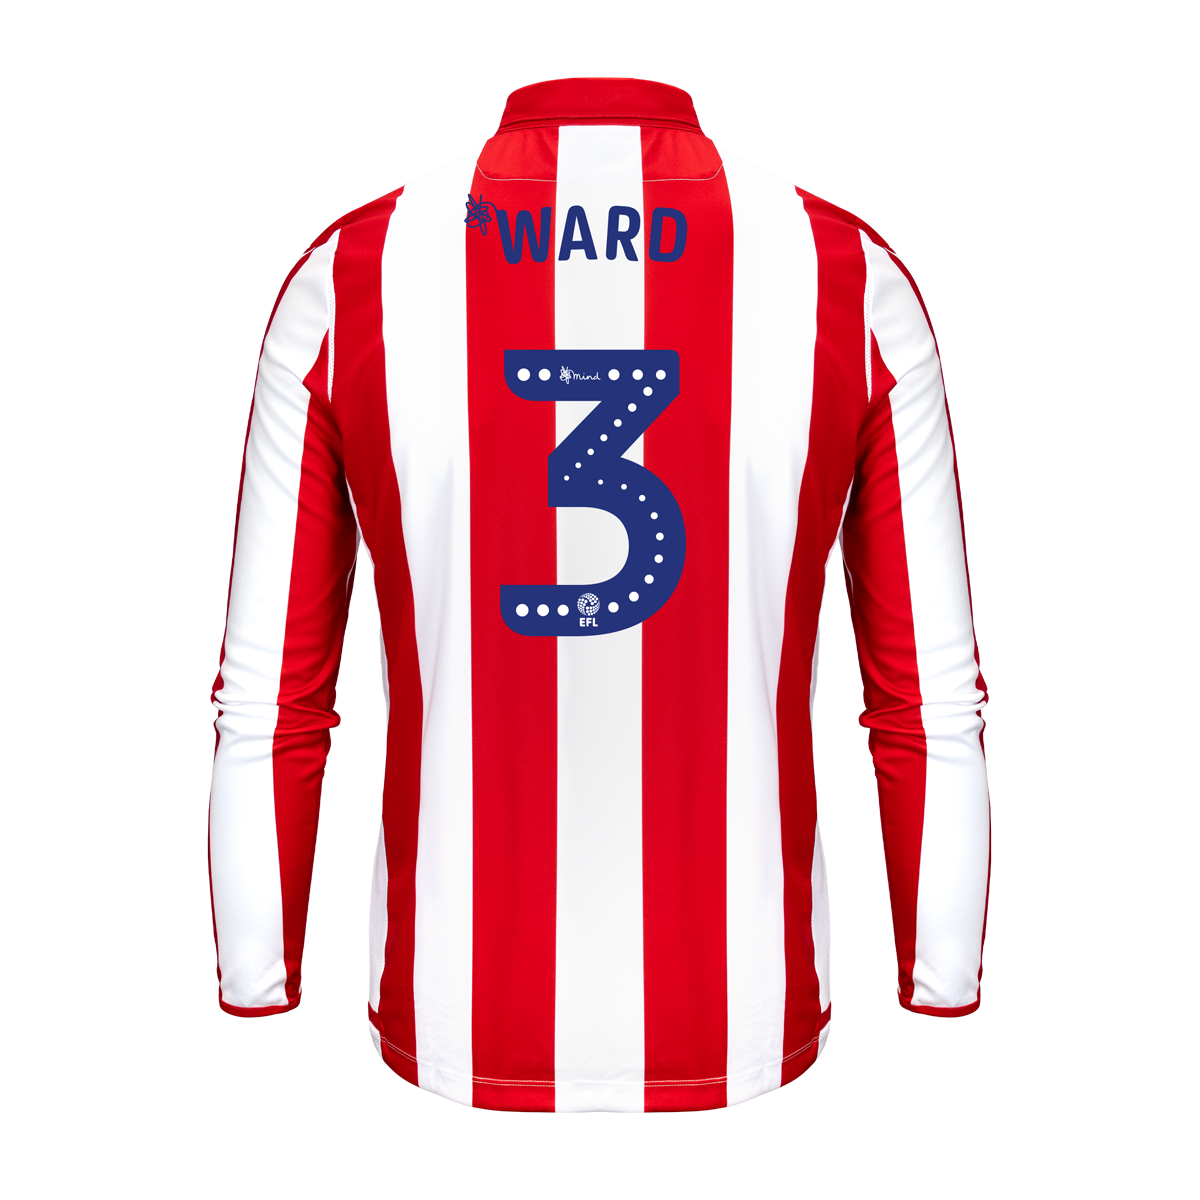 2019/20 Adult Home LS Shirt - Ward